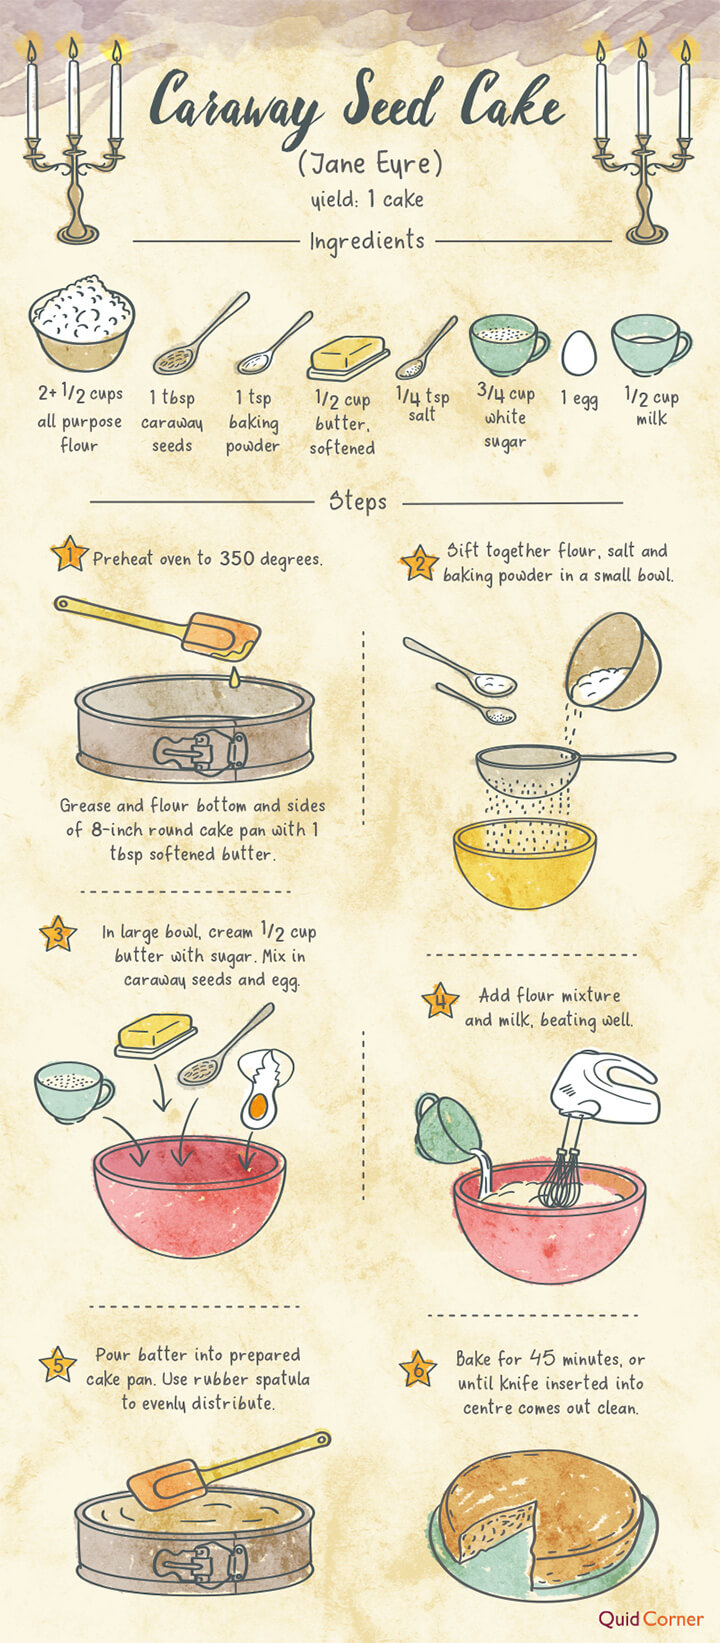 7 Definitive Children's Books, 7 Definitive Recipes and How to Cook Them - Infographic